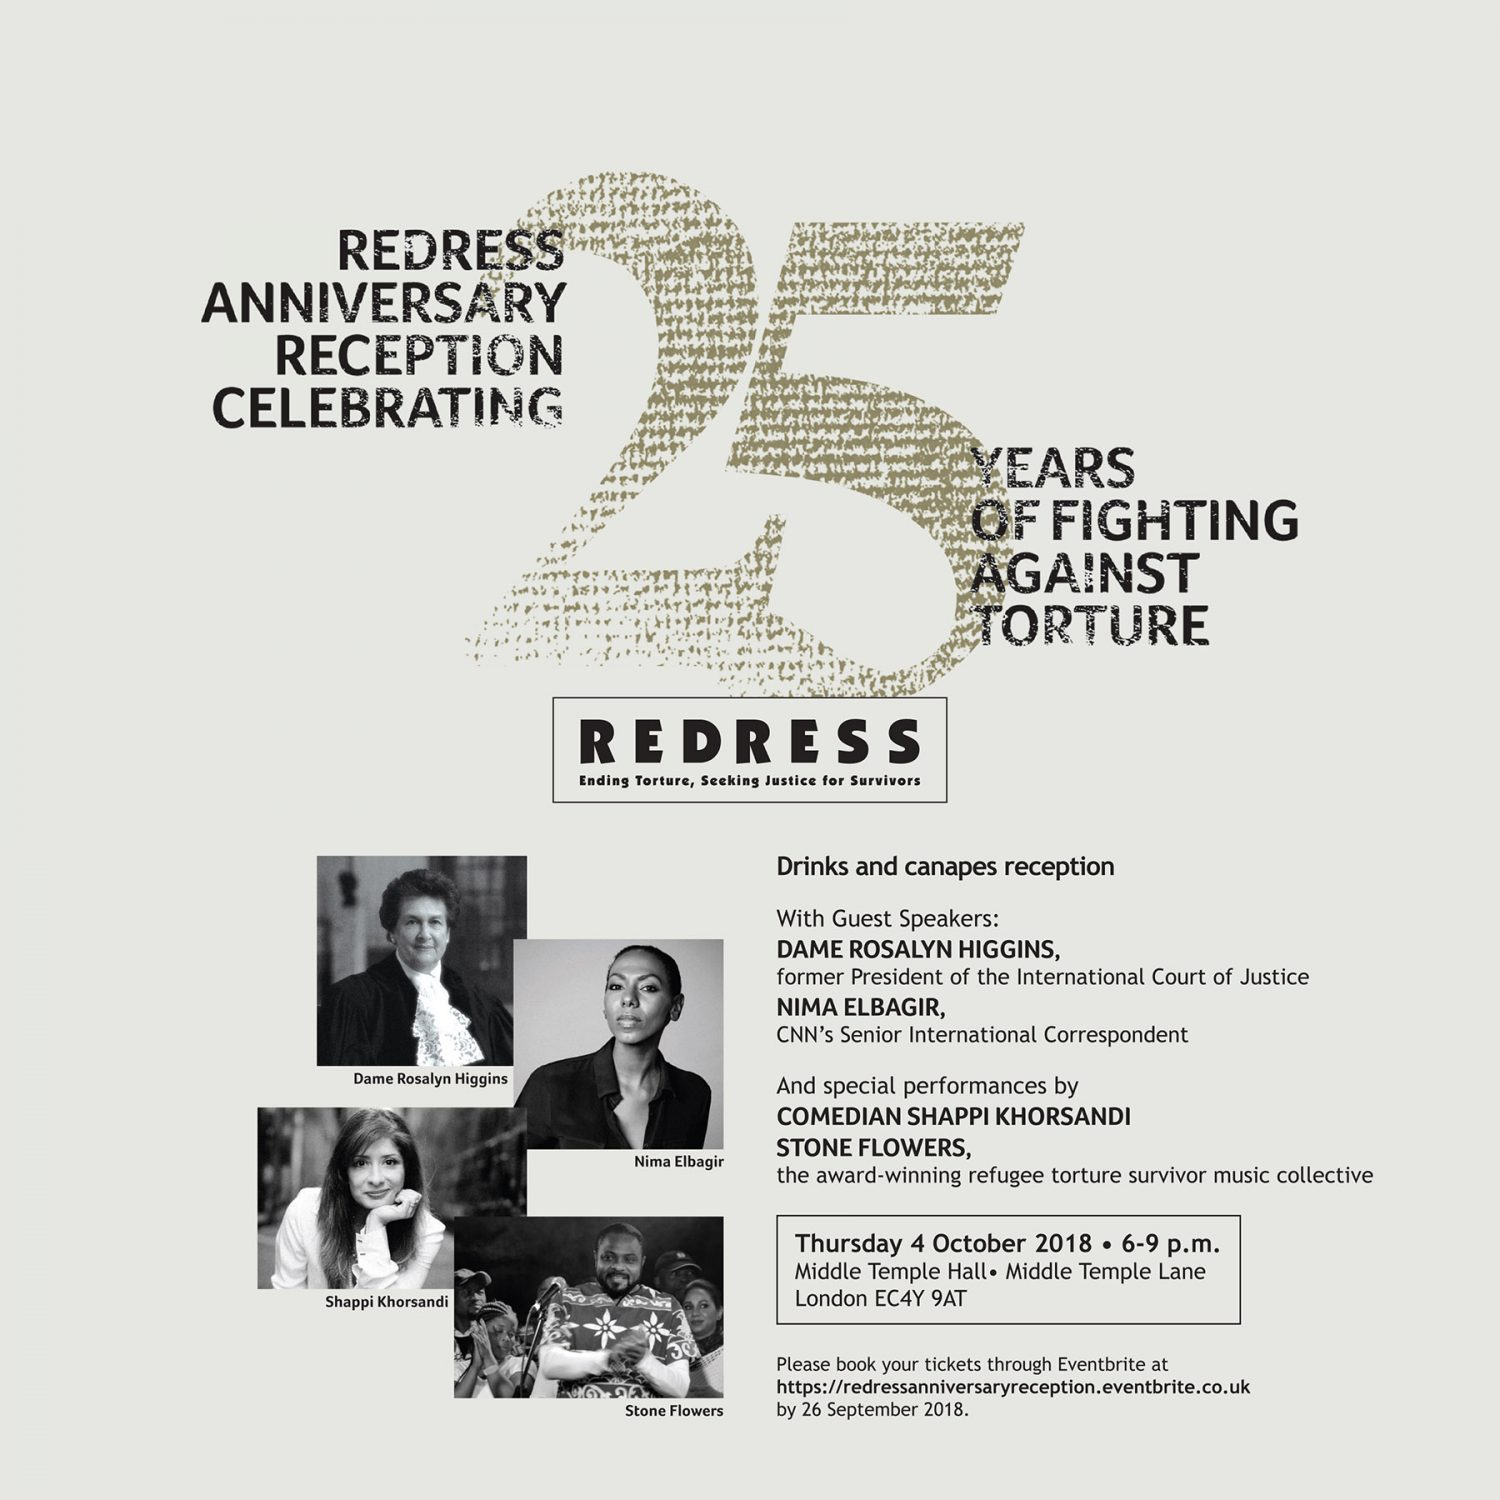 REDRESS' Anniversary Reception celebrating 25 Years of